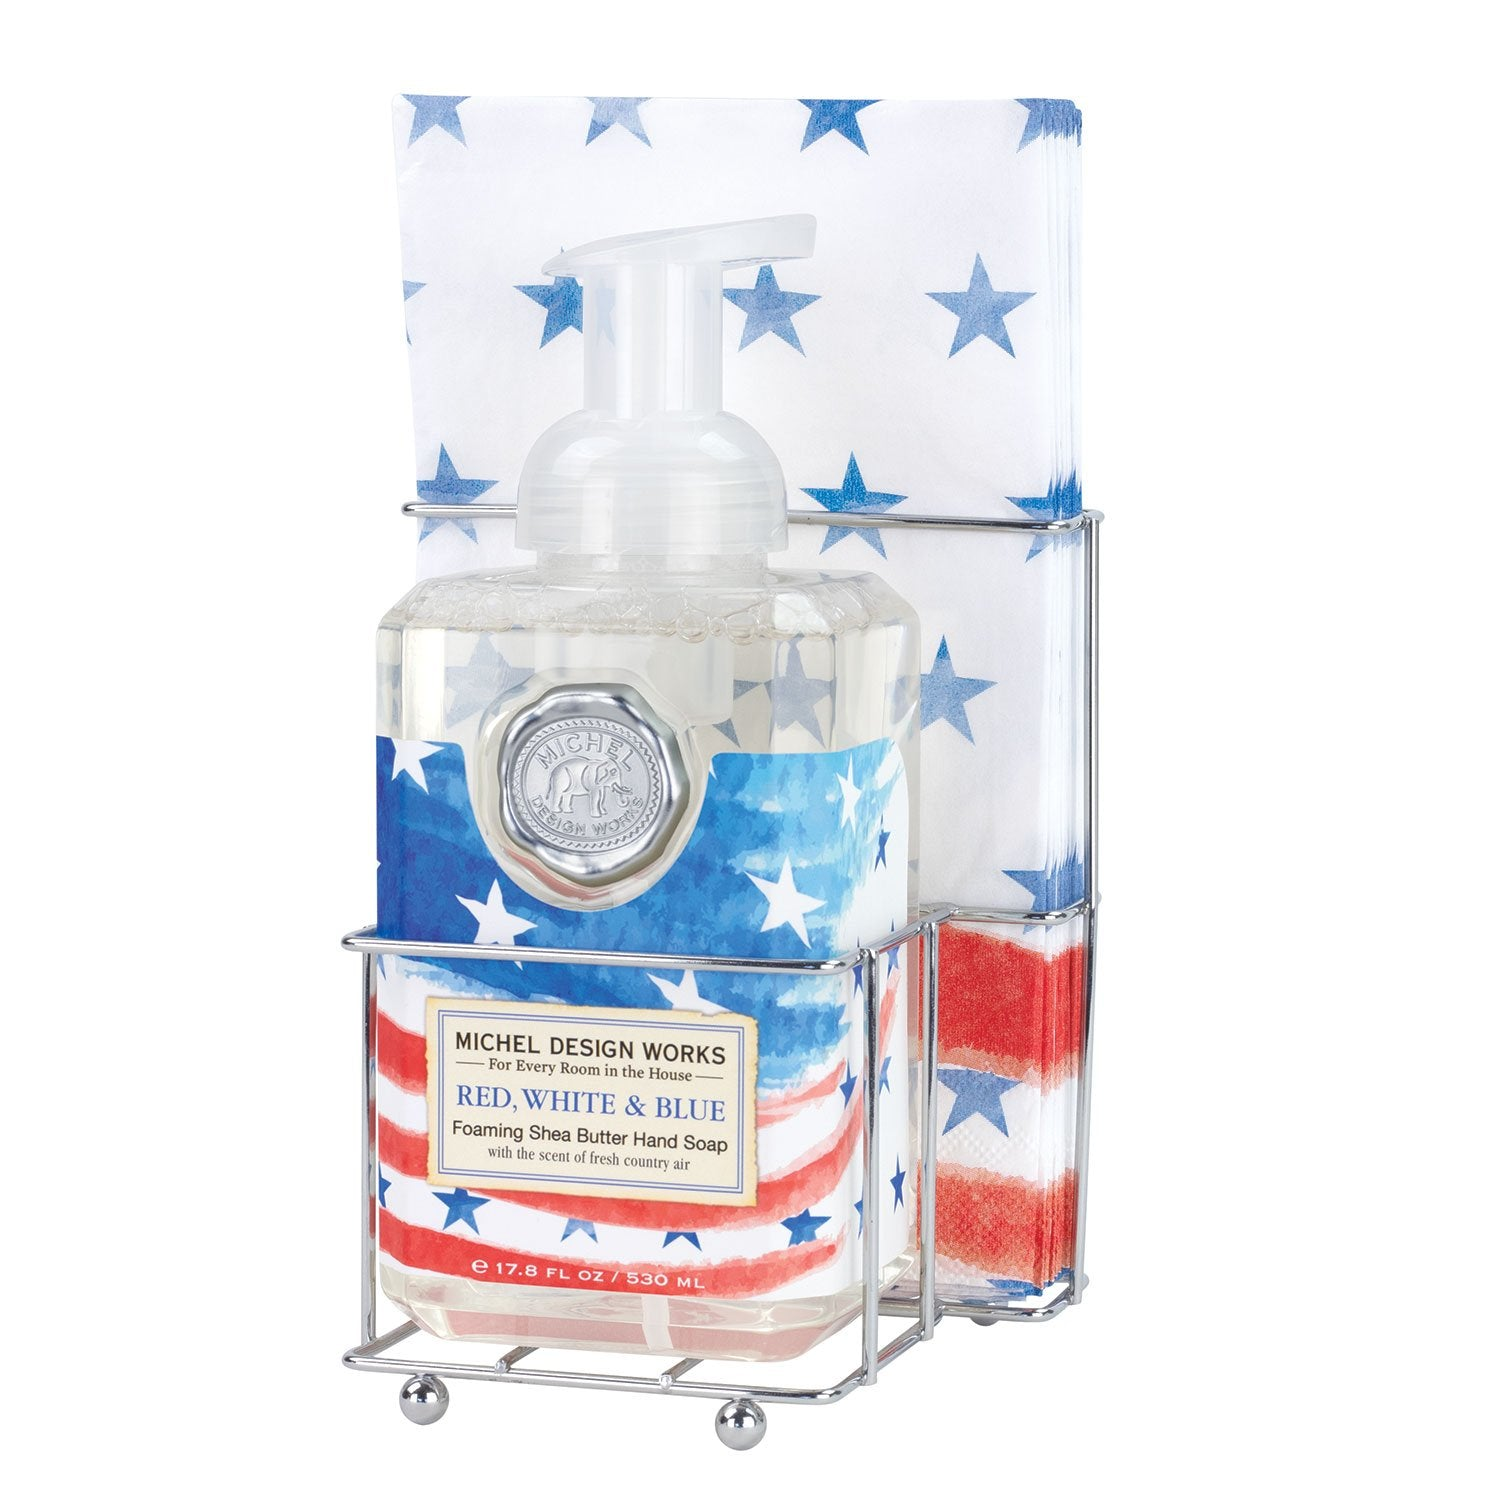 Red, White & Blue Foaming Hand Soap Napkin Set